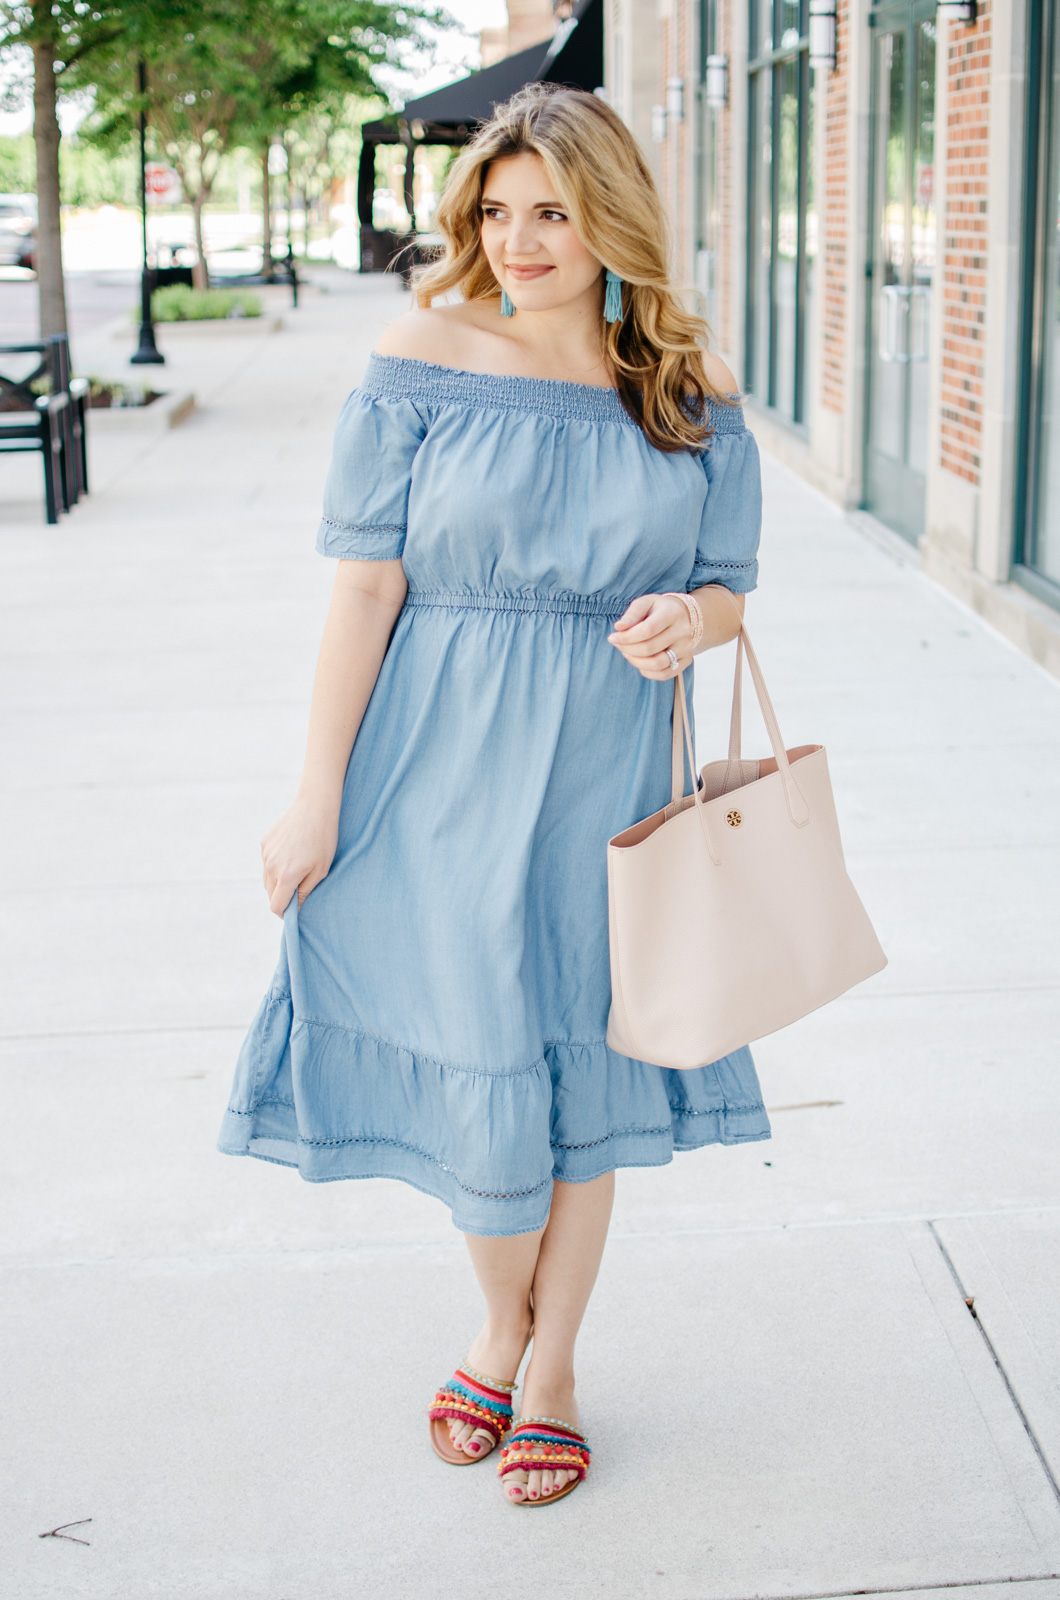 cute summer outfit - chambray off shoulder dress outfit | For more Summer style, head to bylaurenm.com